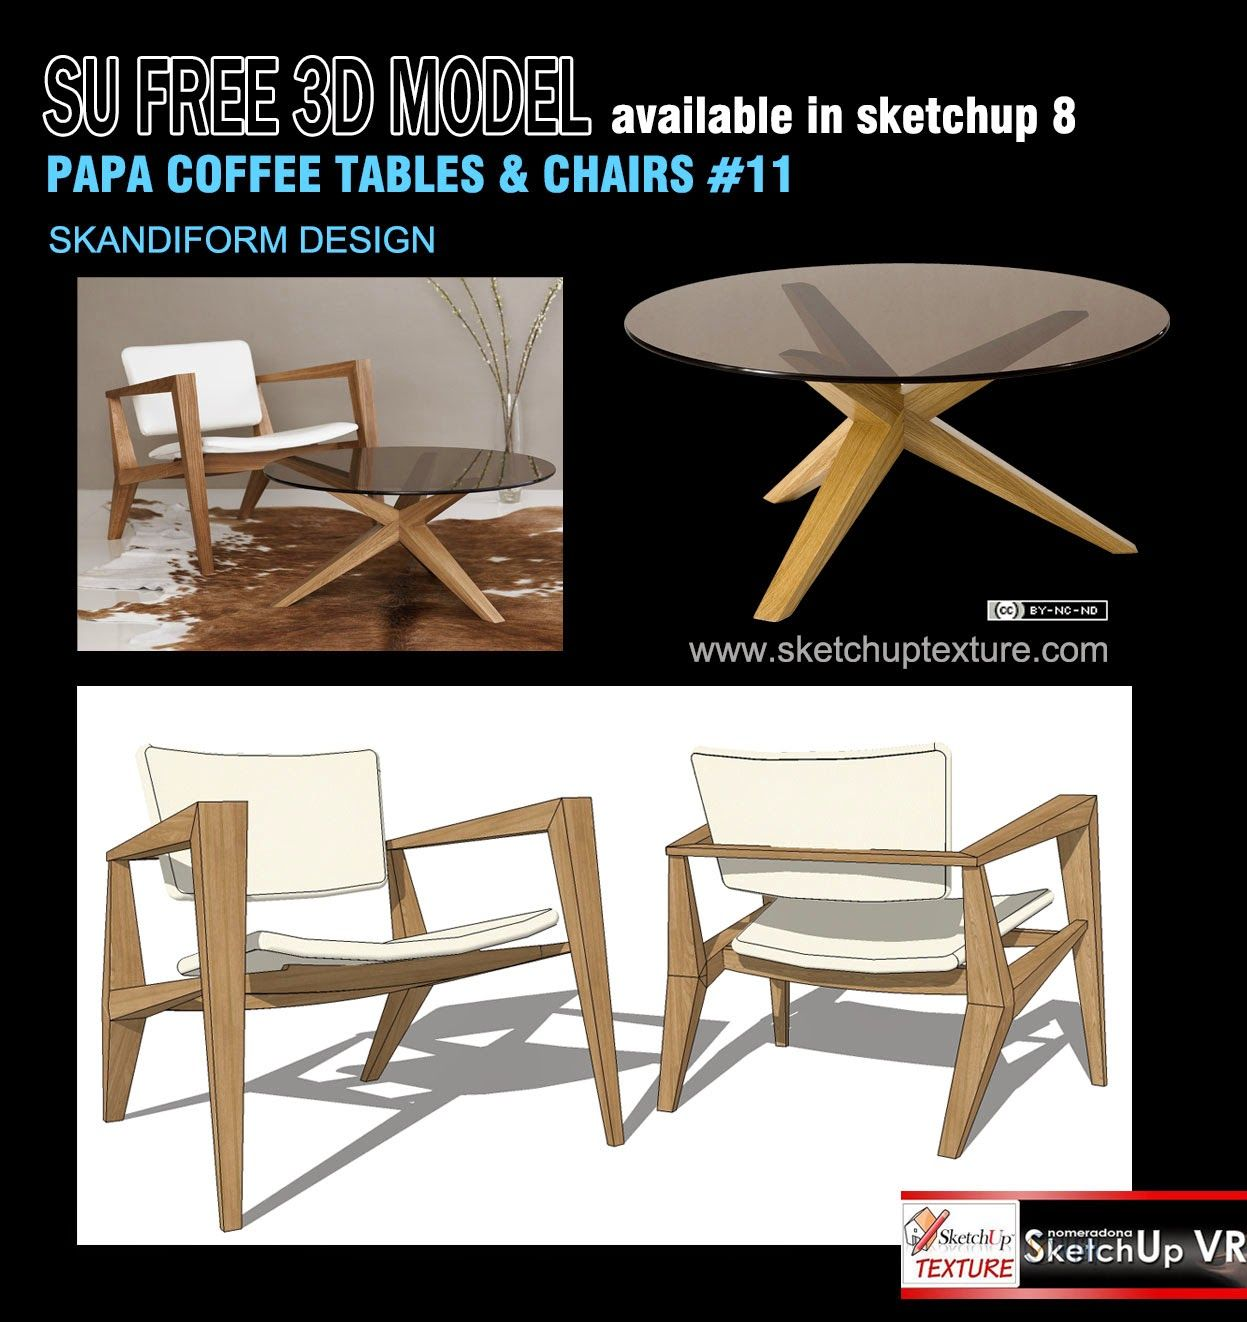 SKETCHUP TEXTURE: Free sketchup 8d model easy chair & table #8